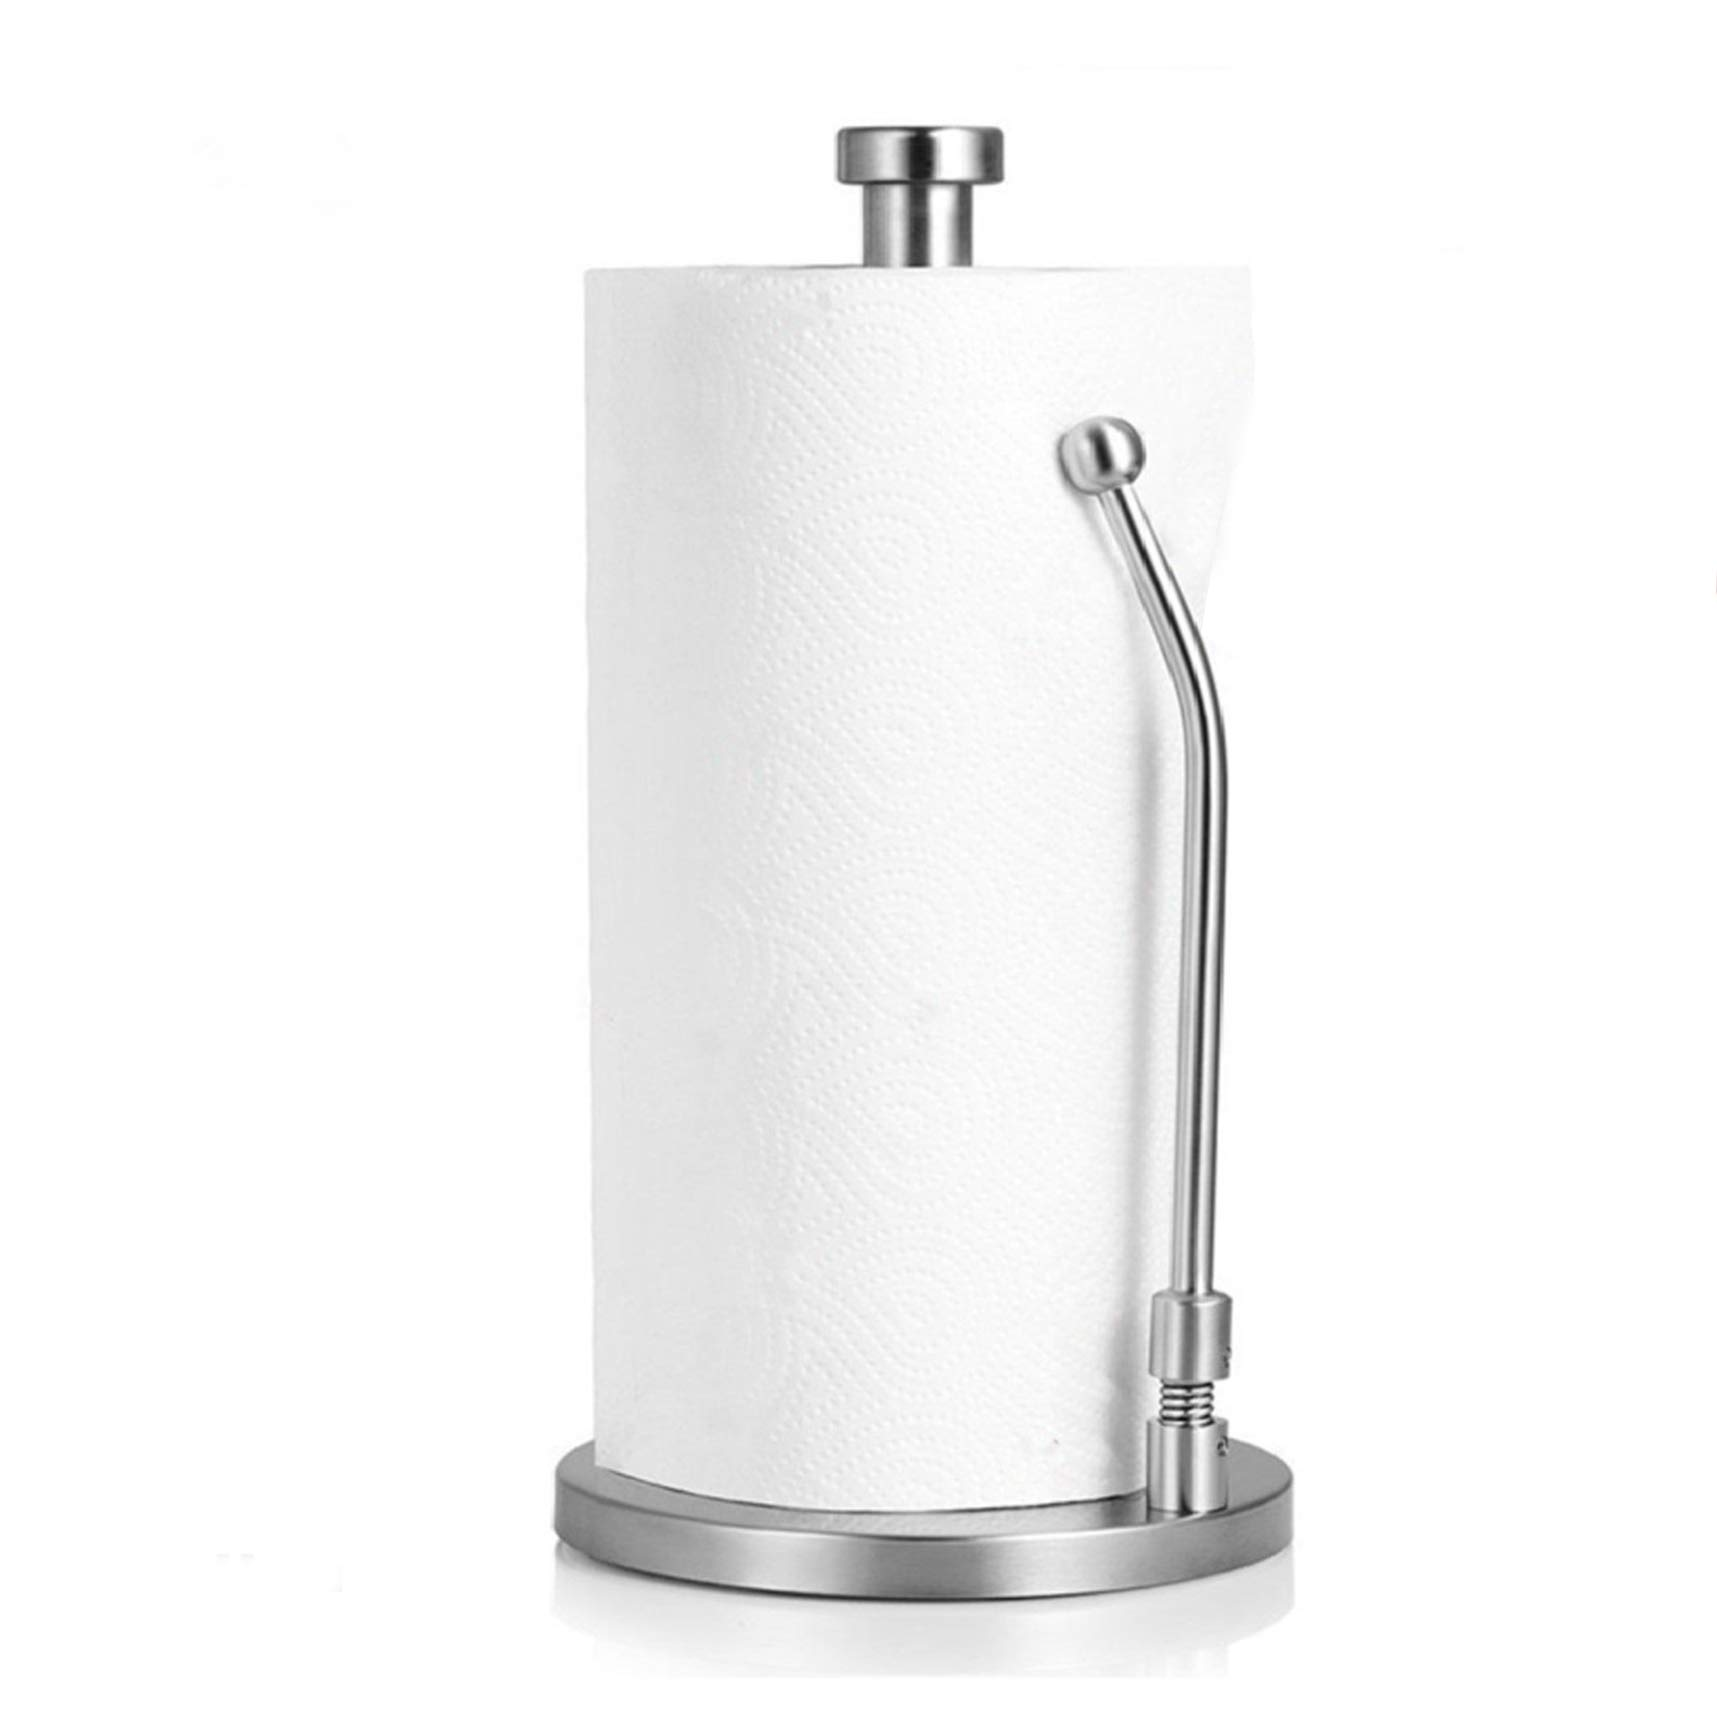 Standing Paper Towel Holder Stainless Steel, Sturdy and Recyclable Kitchen Tissue Holder Countertop for Kitchen & Bathroo,Anti-Slip, Simply Tear Roll Contemporary Paper Towel Holder Napkin Towel hold